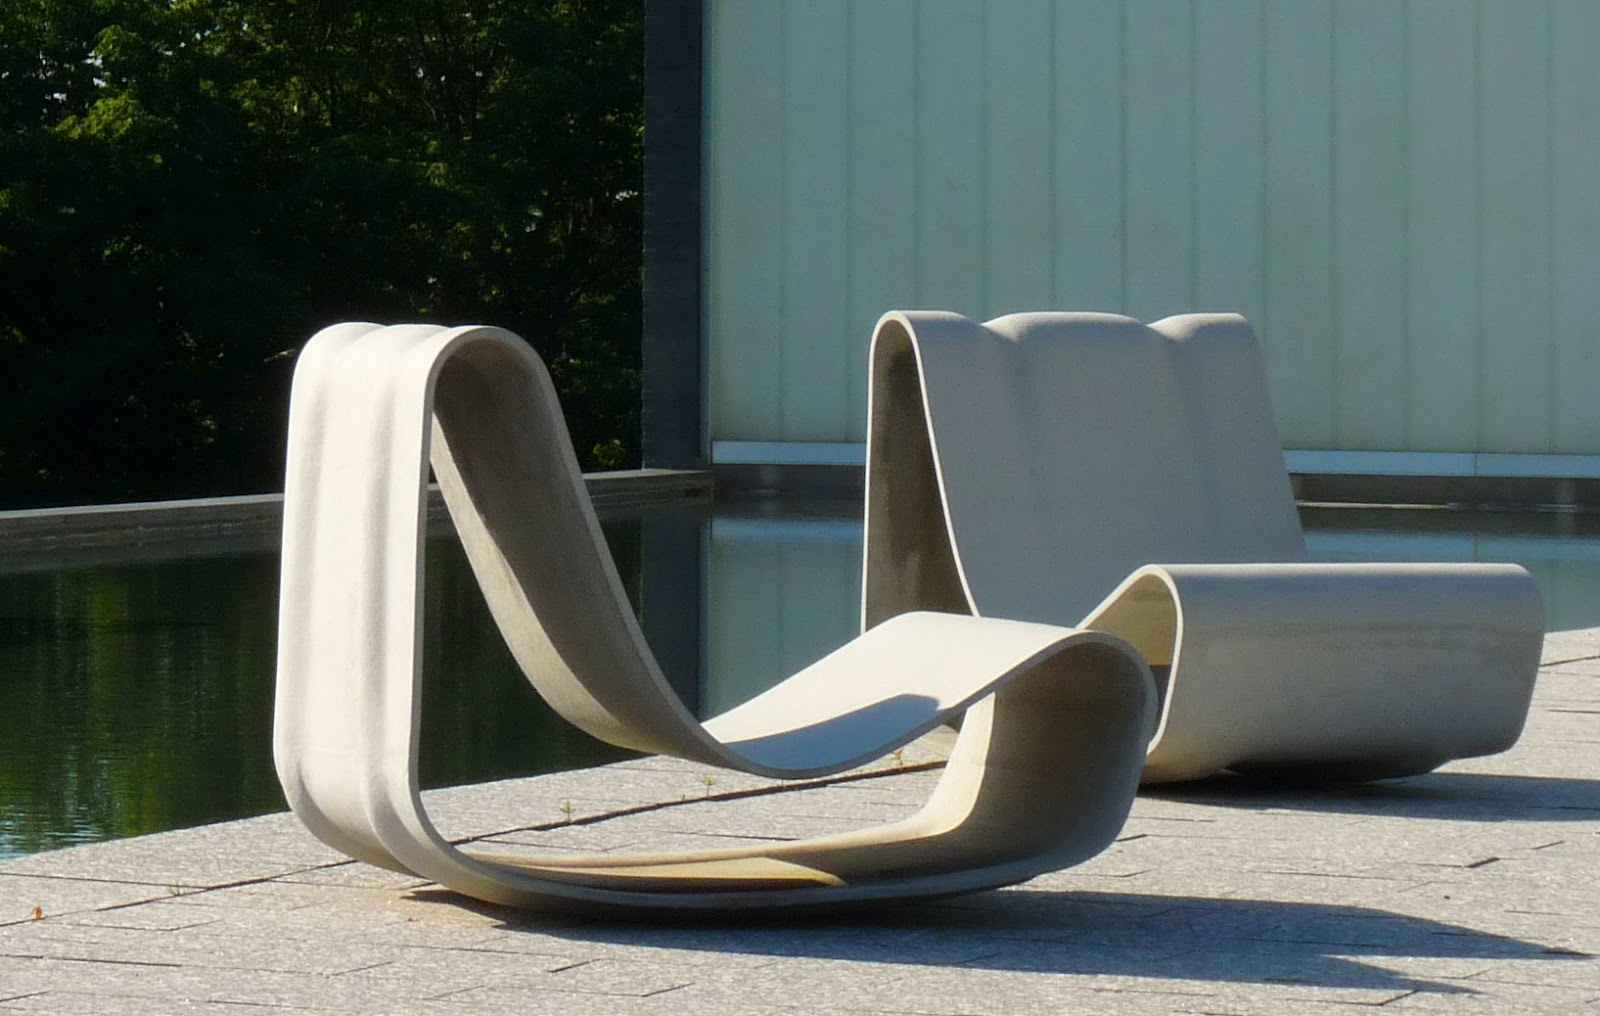 Concrete LOOP Modern Hi-Quality Outdoor-Furniture Designs Chair ...